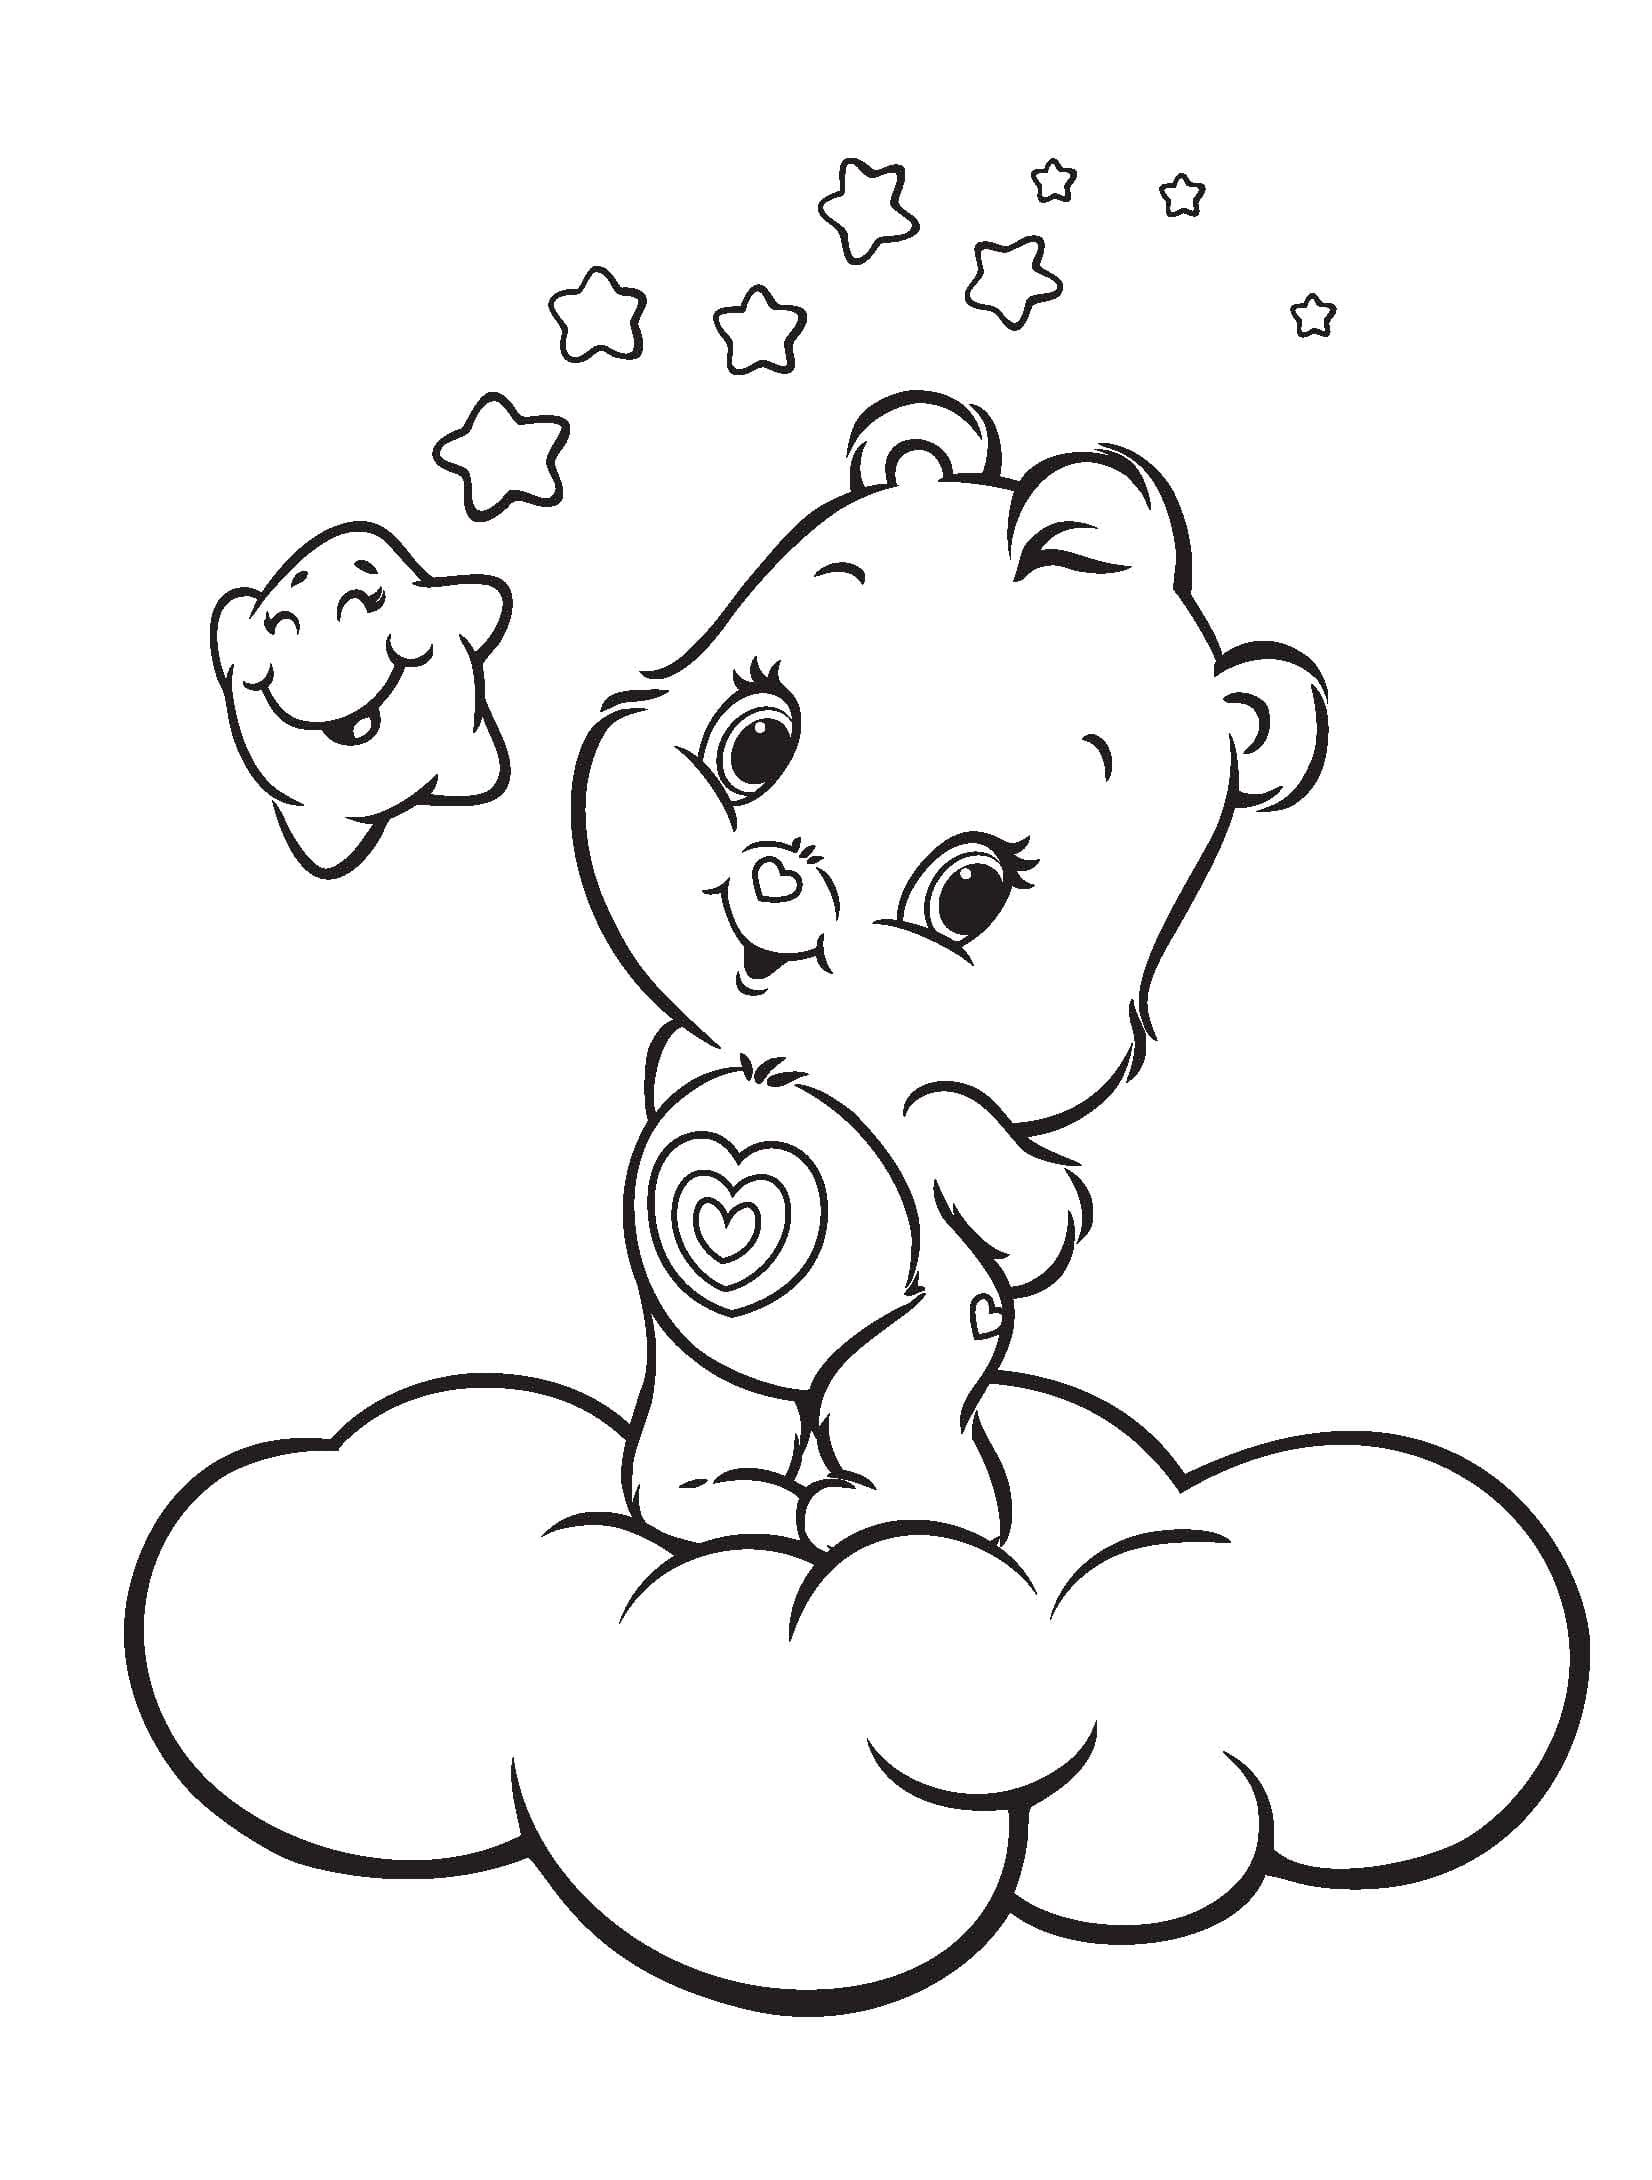 Care Bears Coloring Pages   30 images Free Printable